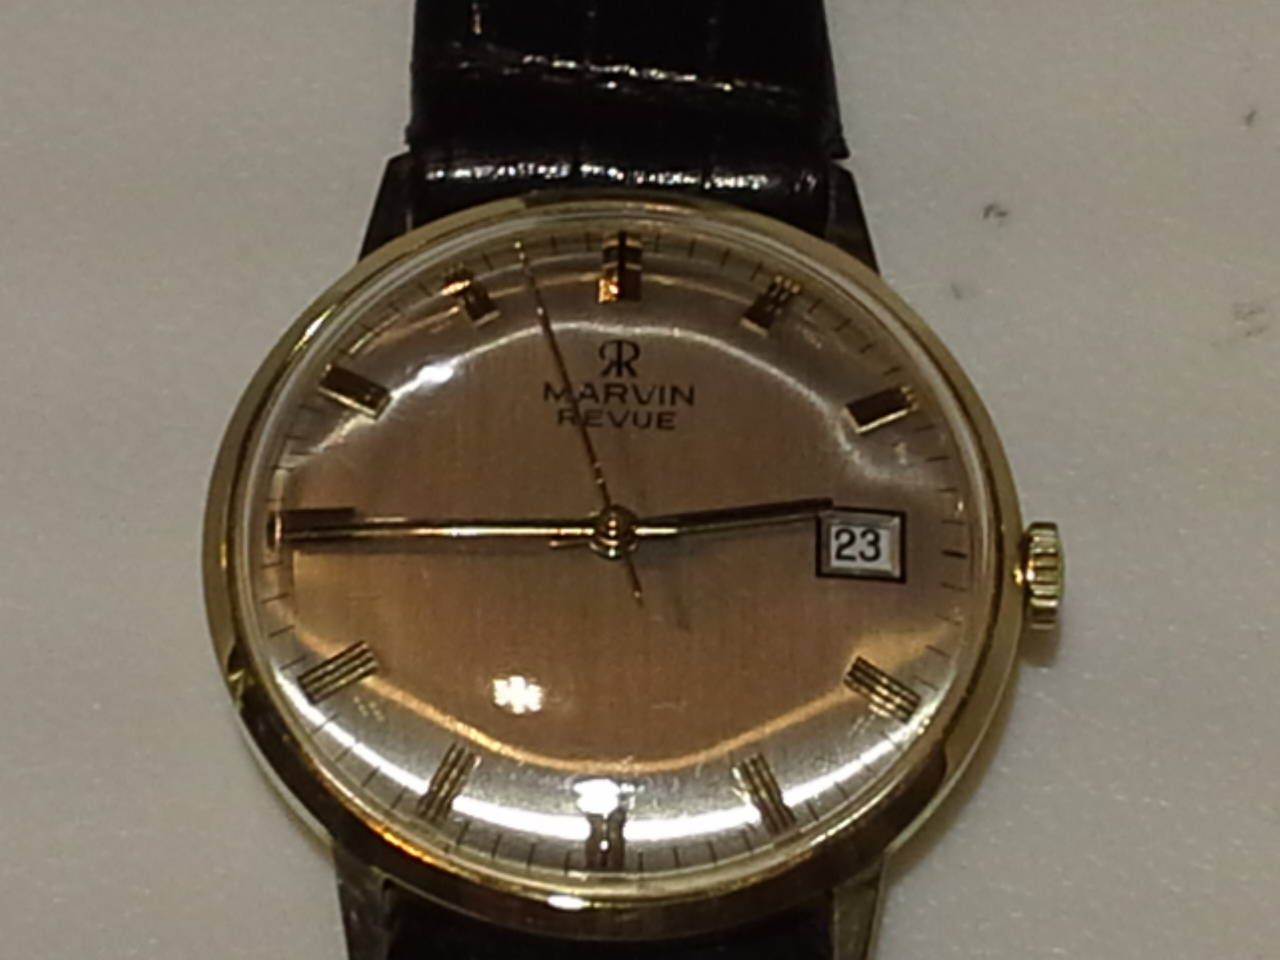 Swiss Marvin Revue Day or Date Gold Wristwatch with Original Bracelet in Original Box